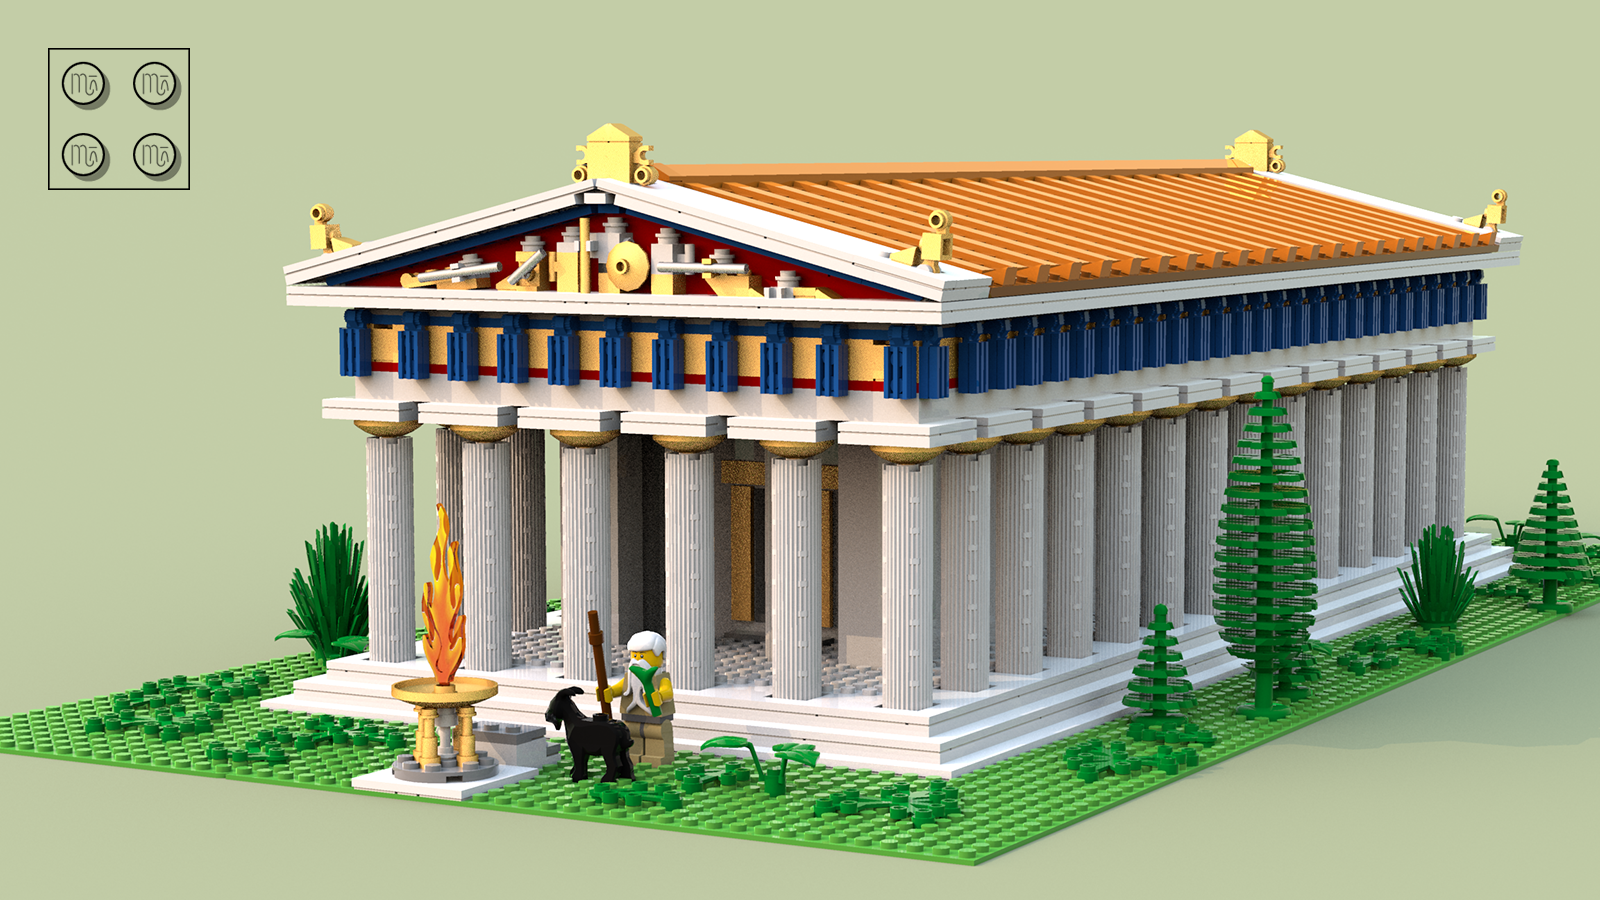 This minifigure-scaled model represents a typical ancient greek temple  built in classical doric order as the Parthenon of Athens, although from an  earlier PlusPng.com  - Ancient Greece PNG HD